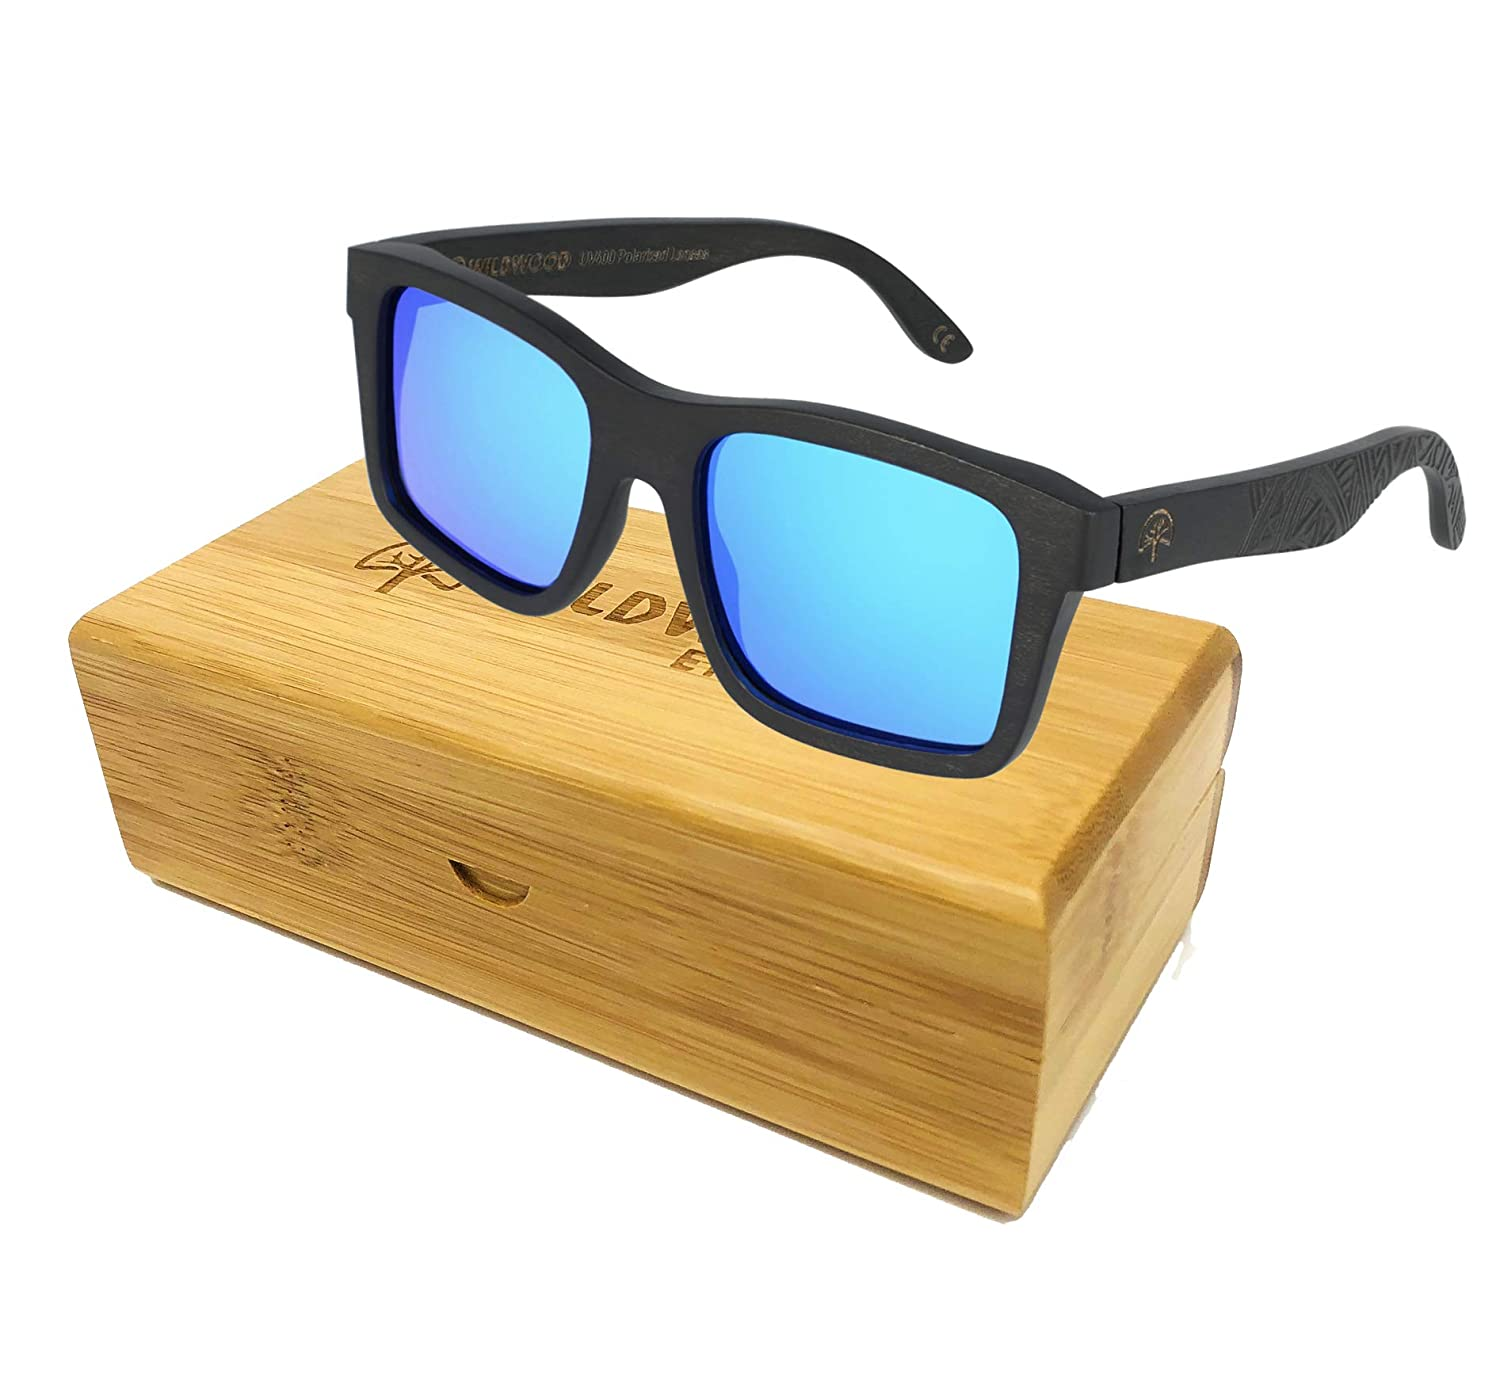 The Islander Maple Wood Polarized Rectangular Frame Sunglasses by Wildwood